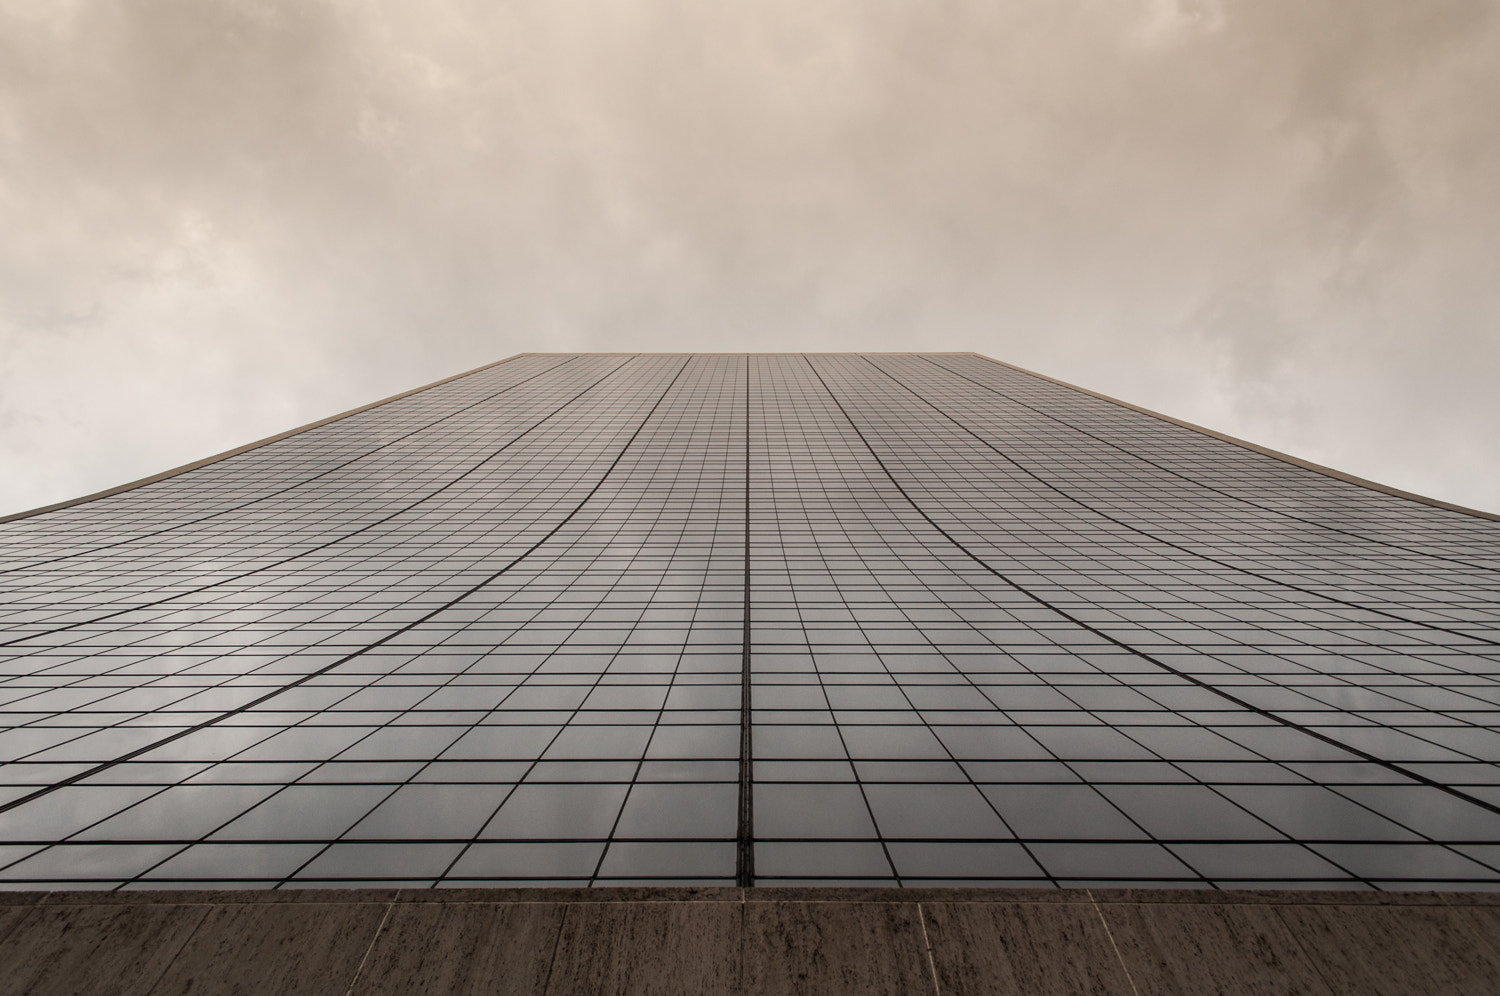 Photograph Skyrise by John Virgolino on 500px